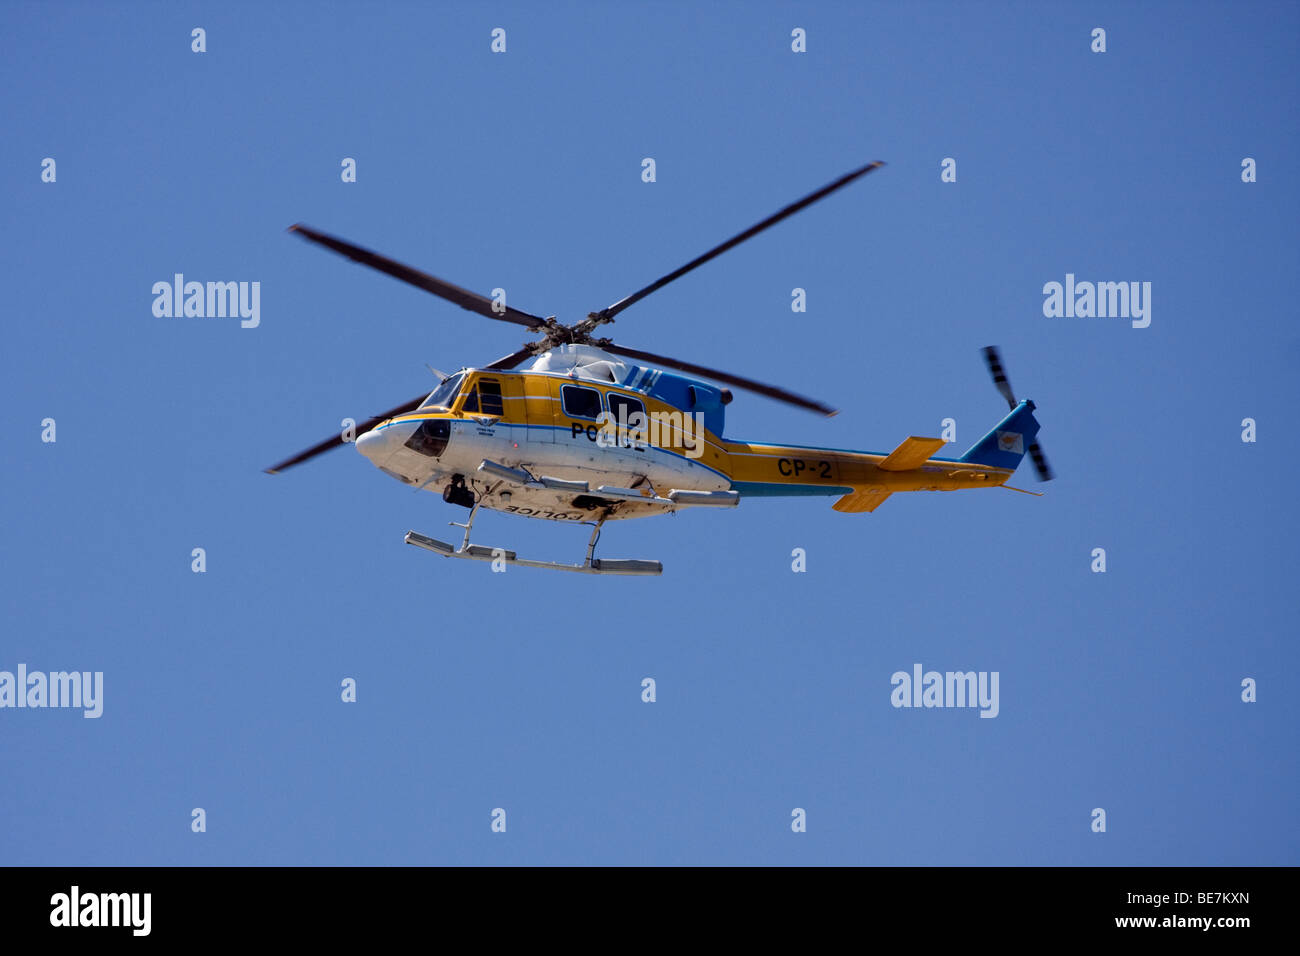 Cypriotic police helicopter on the southern, Greek Cypriotic side. - Stock Image